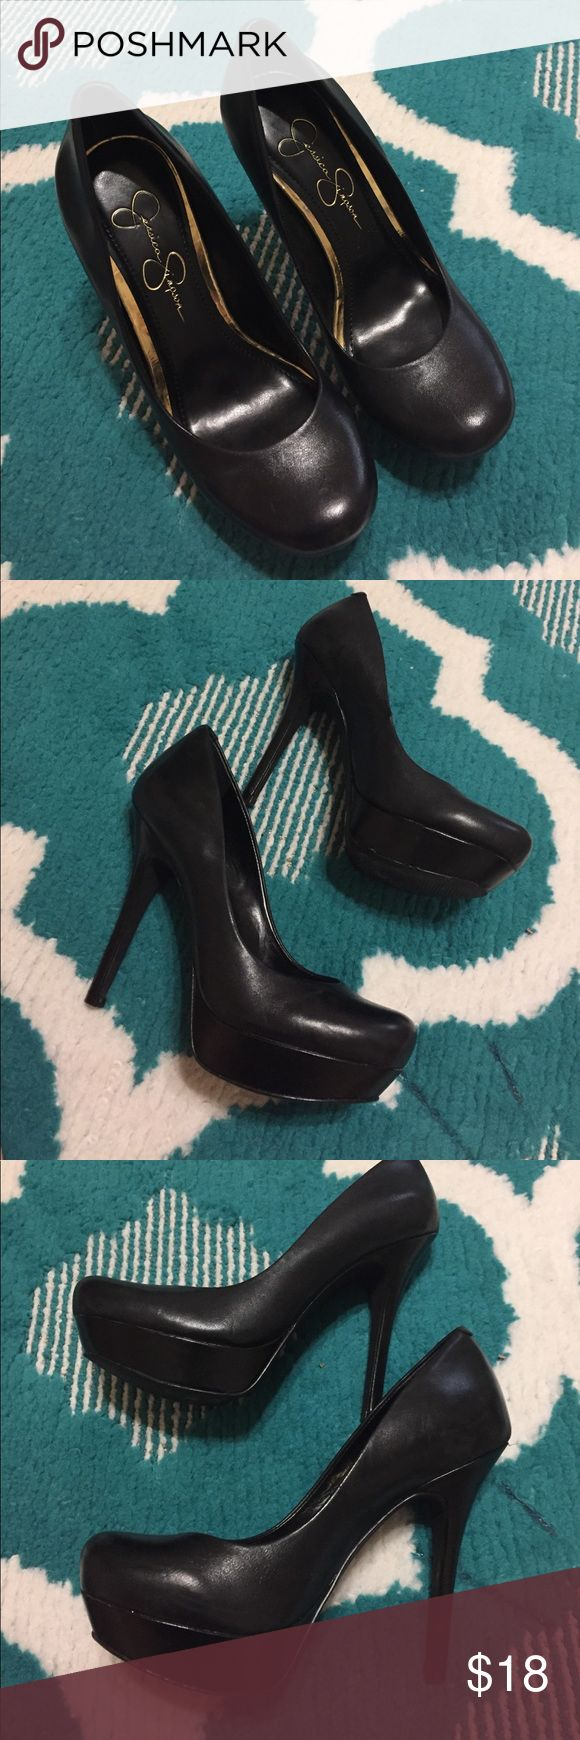 Jéssica Simpson black pumps Jessica Simpson black pumps Jessica Simpson Shoes Heels